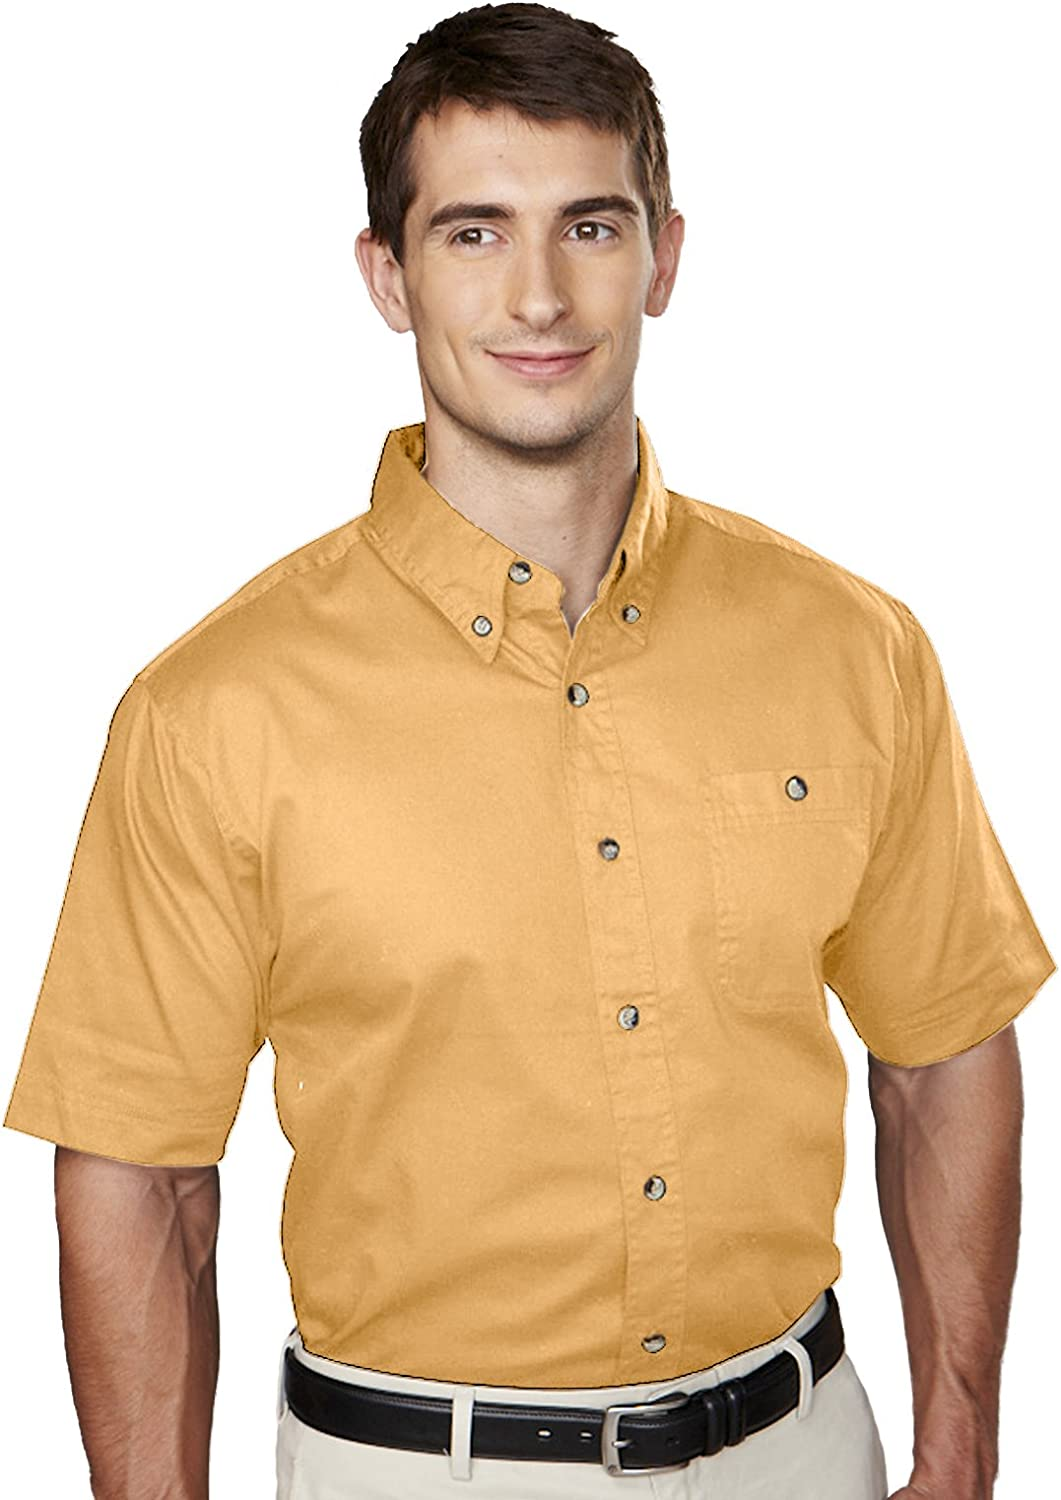 Big and Tall Short Sleeved 100% Cotton Twill Shirt in Maize up to 6XT Tall